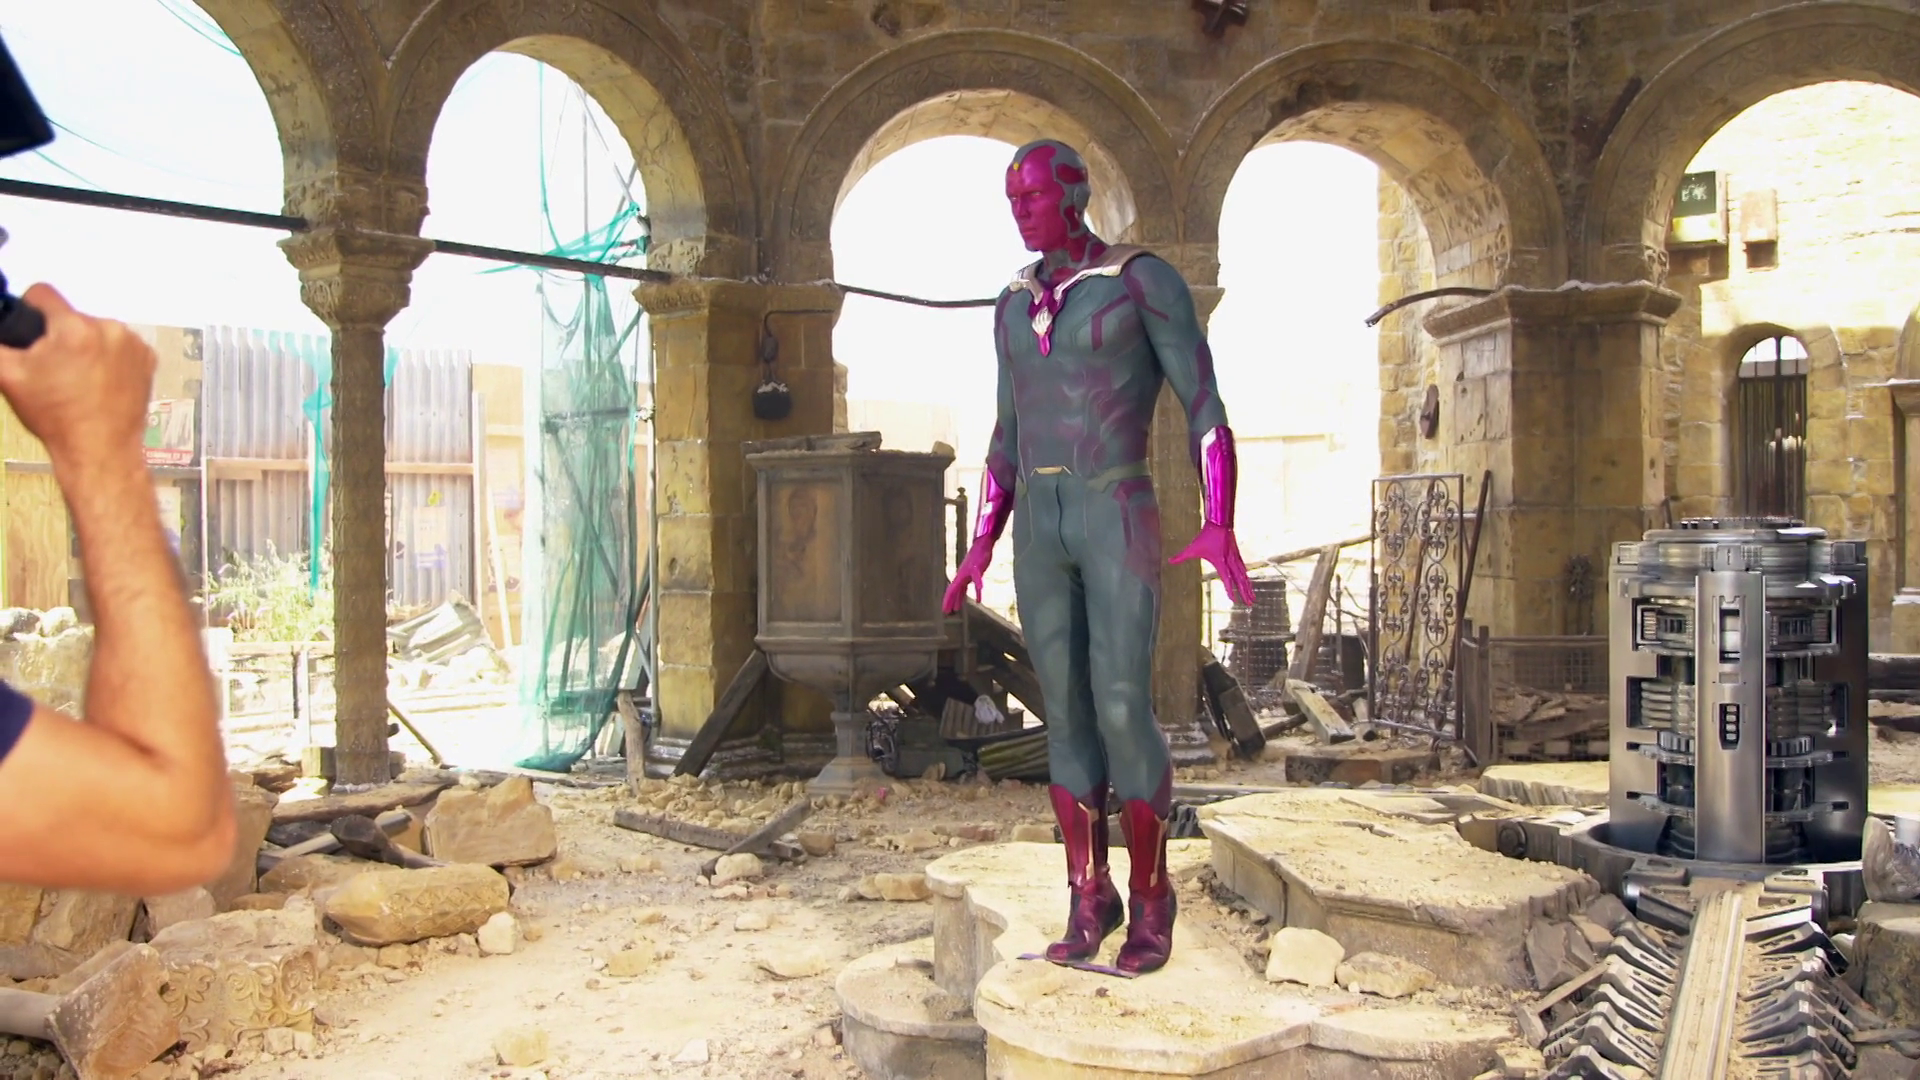 Uncanny Valley - Avengers: Age of Ultron Behind the Scenes